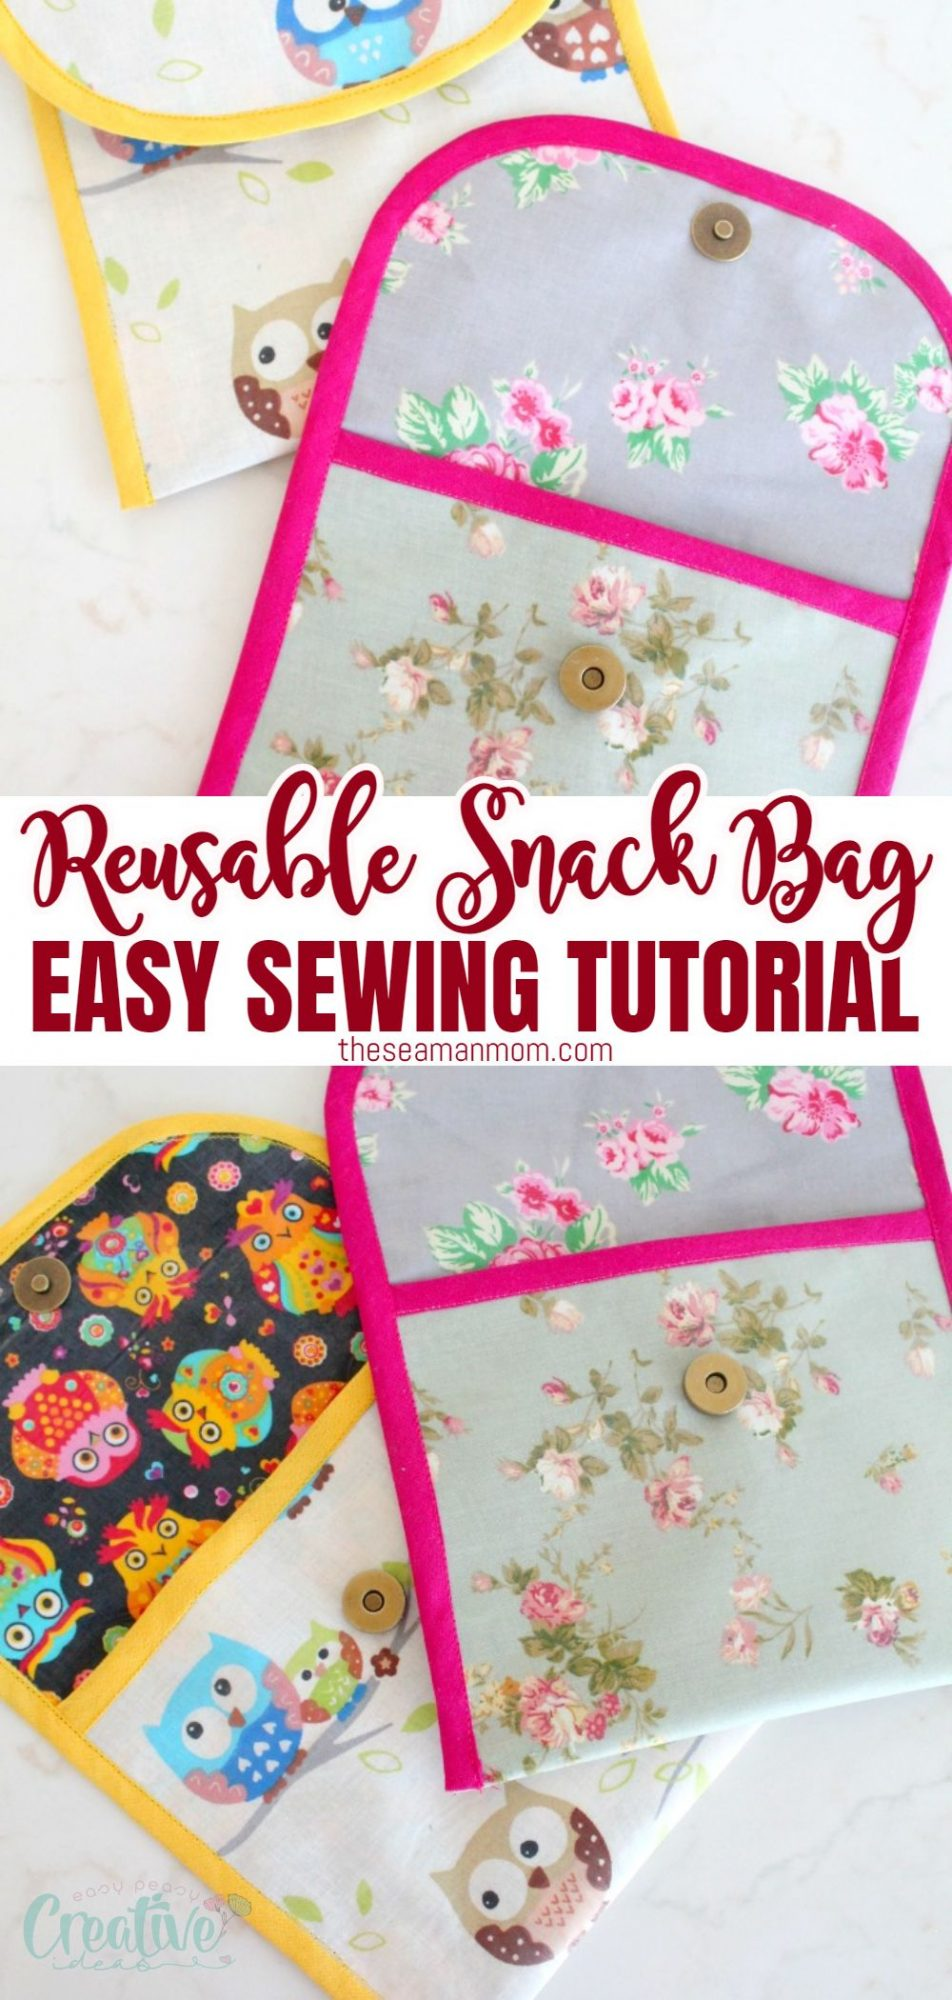 Photo collage of DIY reusable snack bags with magnetic snaps, sewn with waterproof fabric